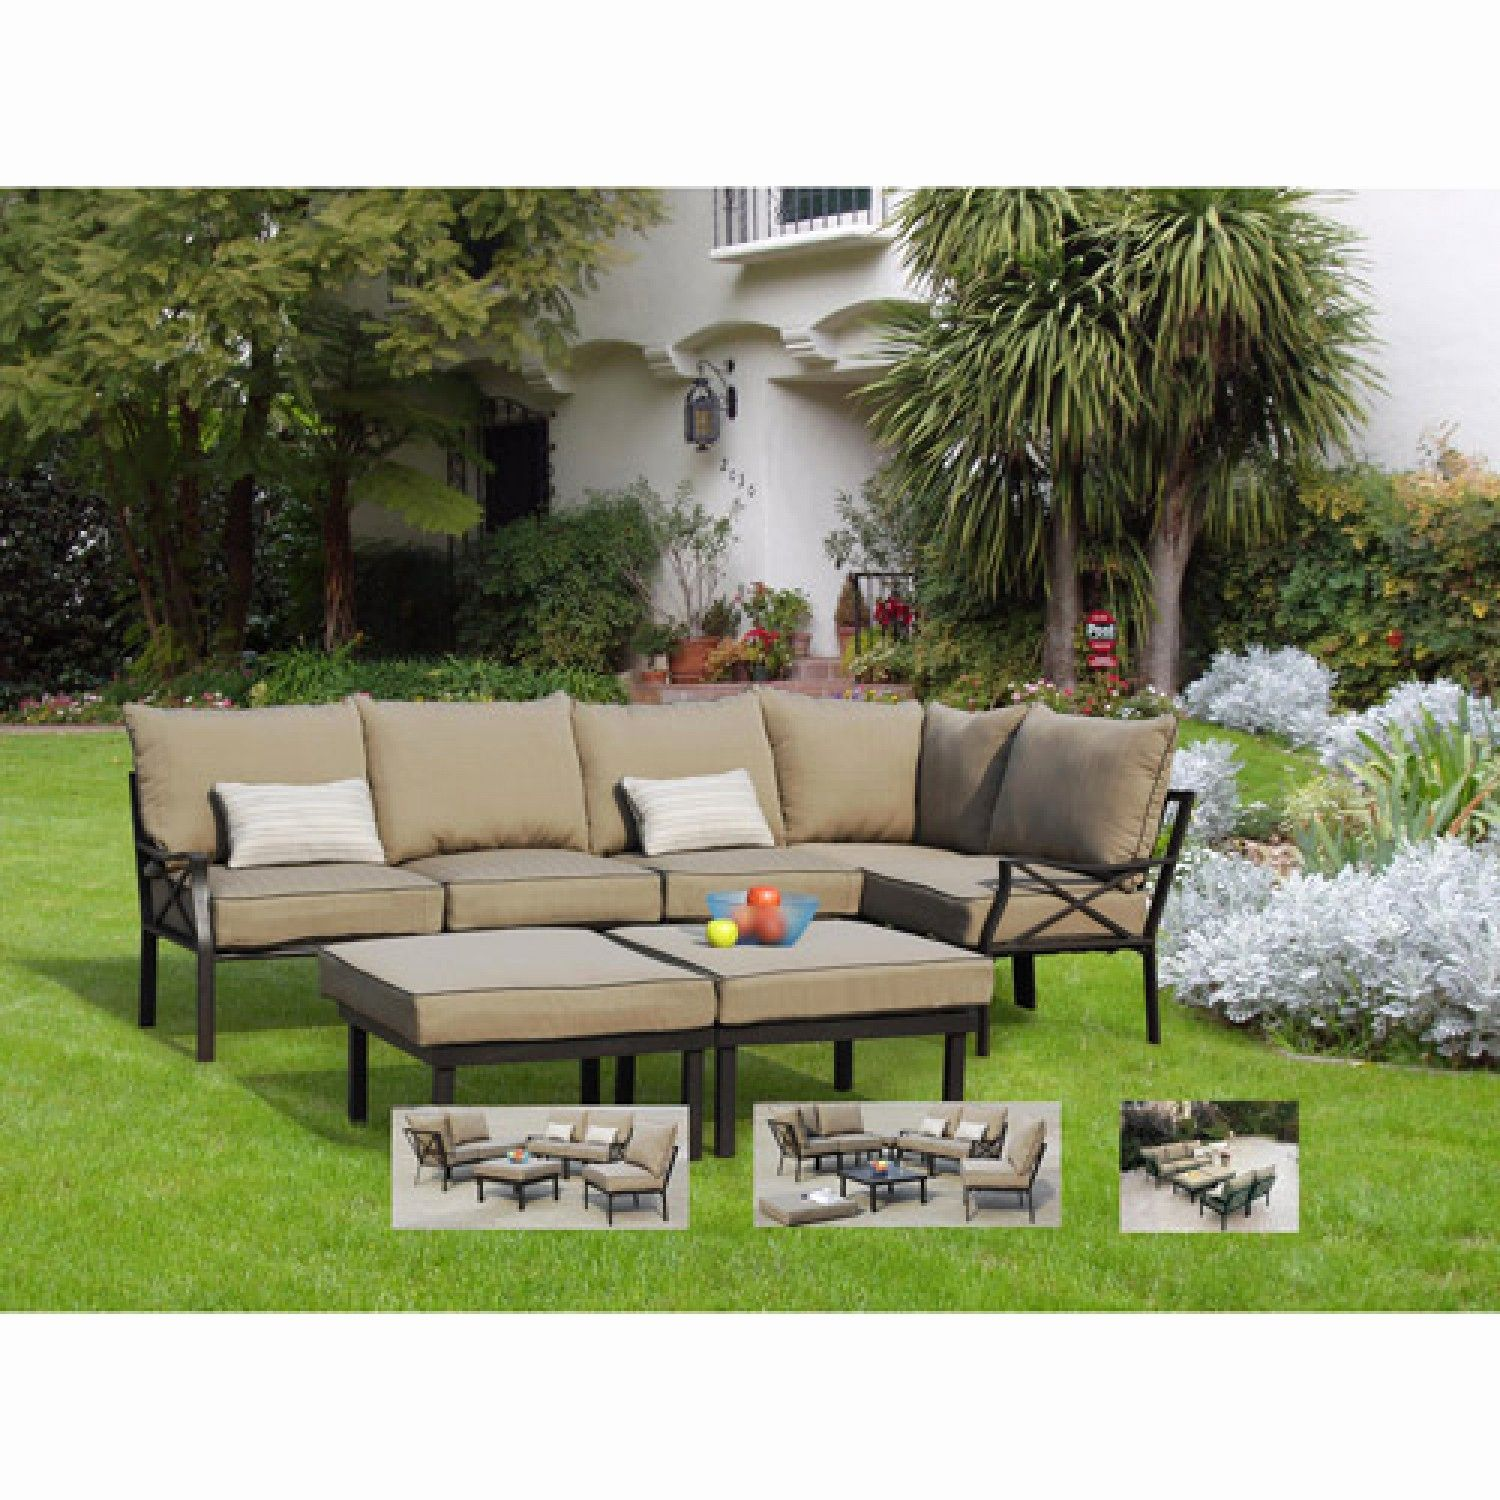 Beautiful Outdoor Sectional sofa Set Outdoor Sectional sofa